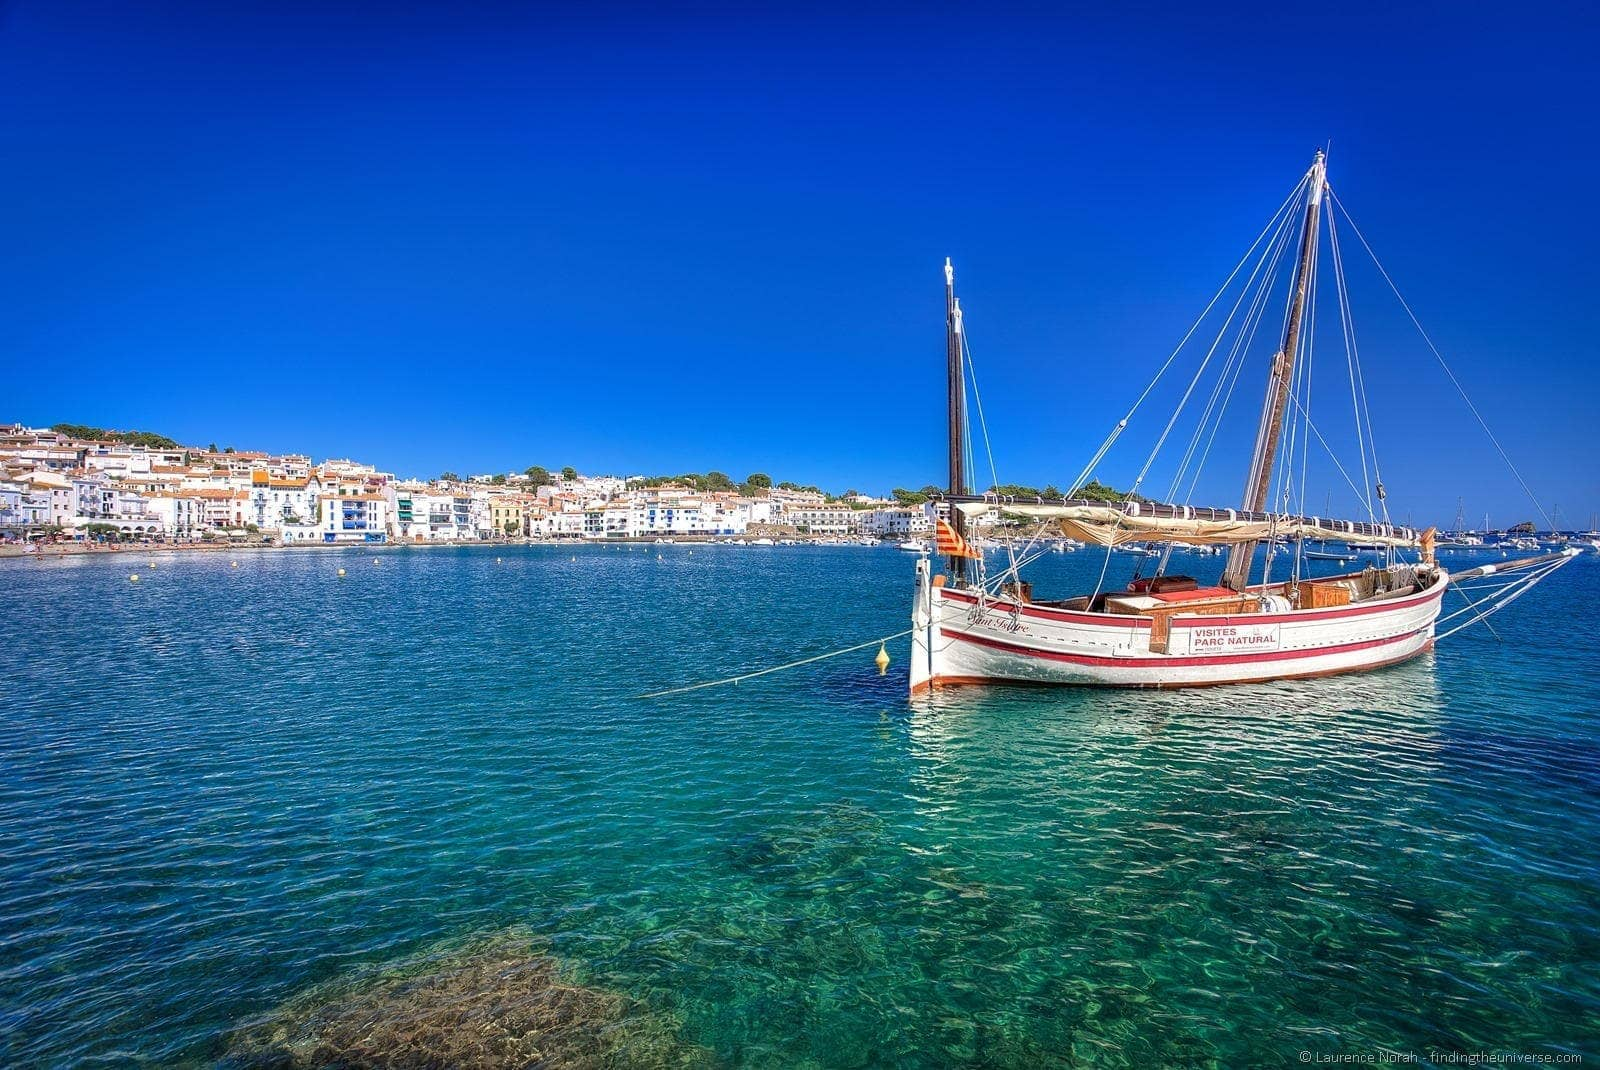 Boat in cadaques harbour spain